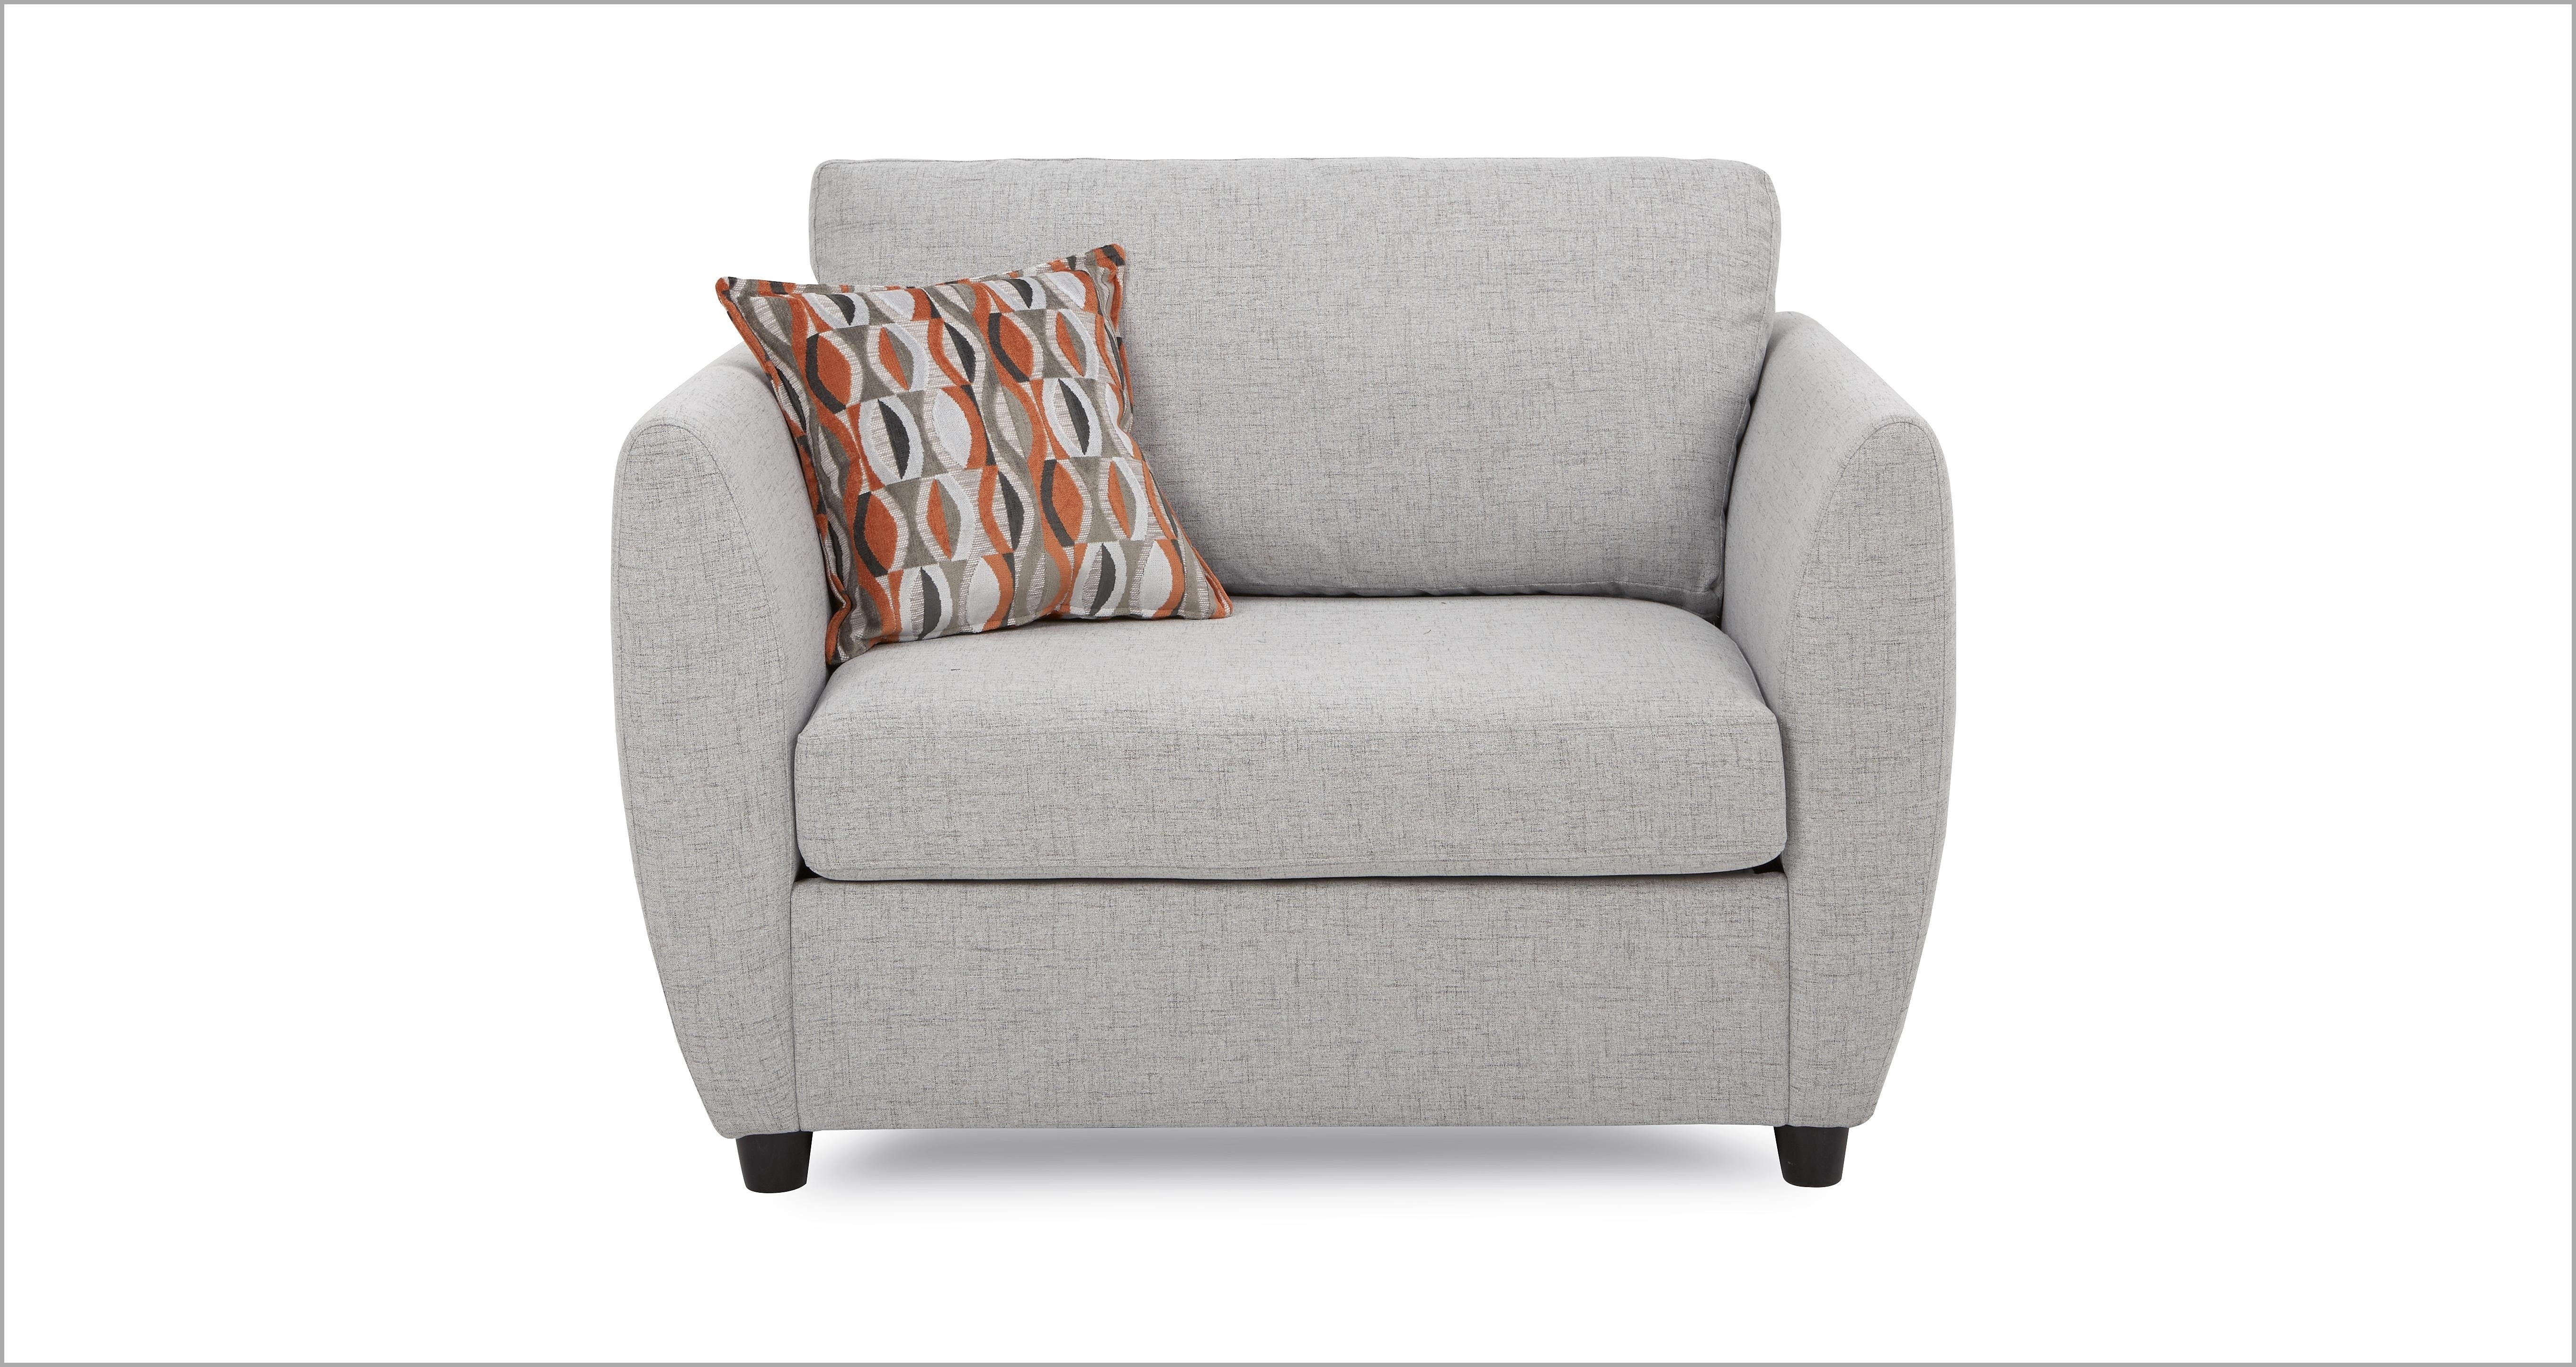 Sofa : Cheap 2 Seater Sofa Bed Sofa Bed Offers Corner Sofa Bed Uk Throughout Cheap Single Sofas (View 3 of 10)